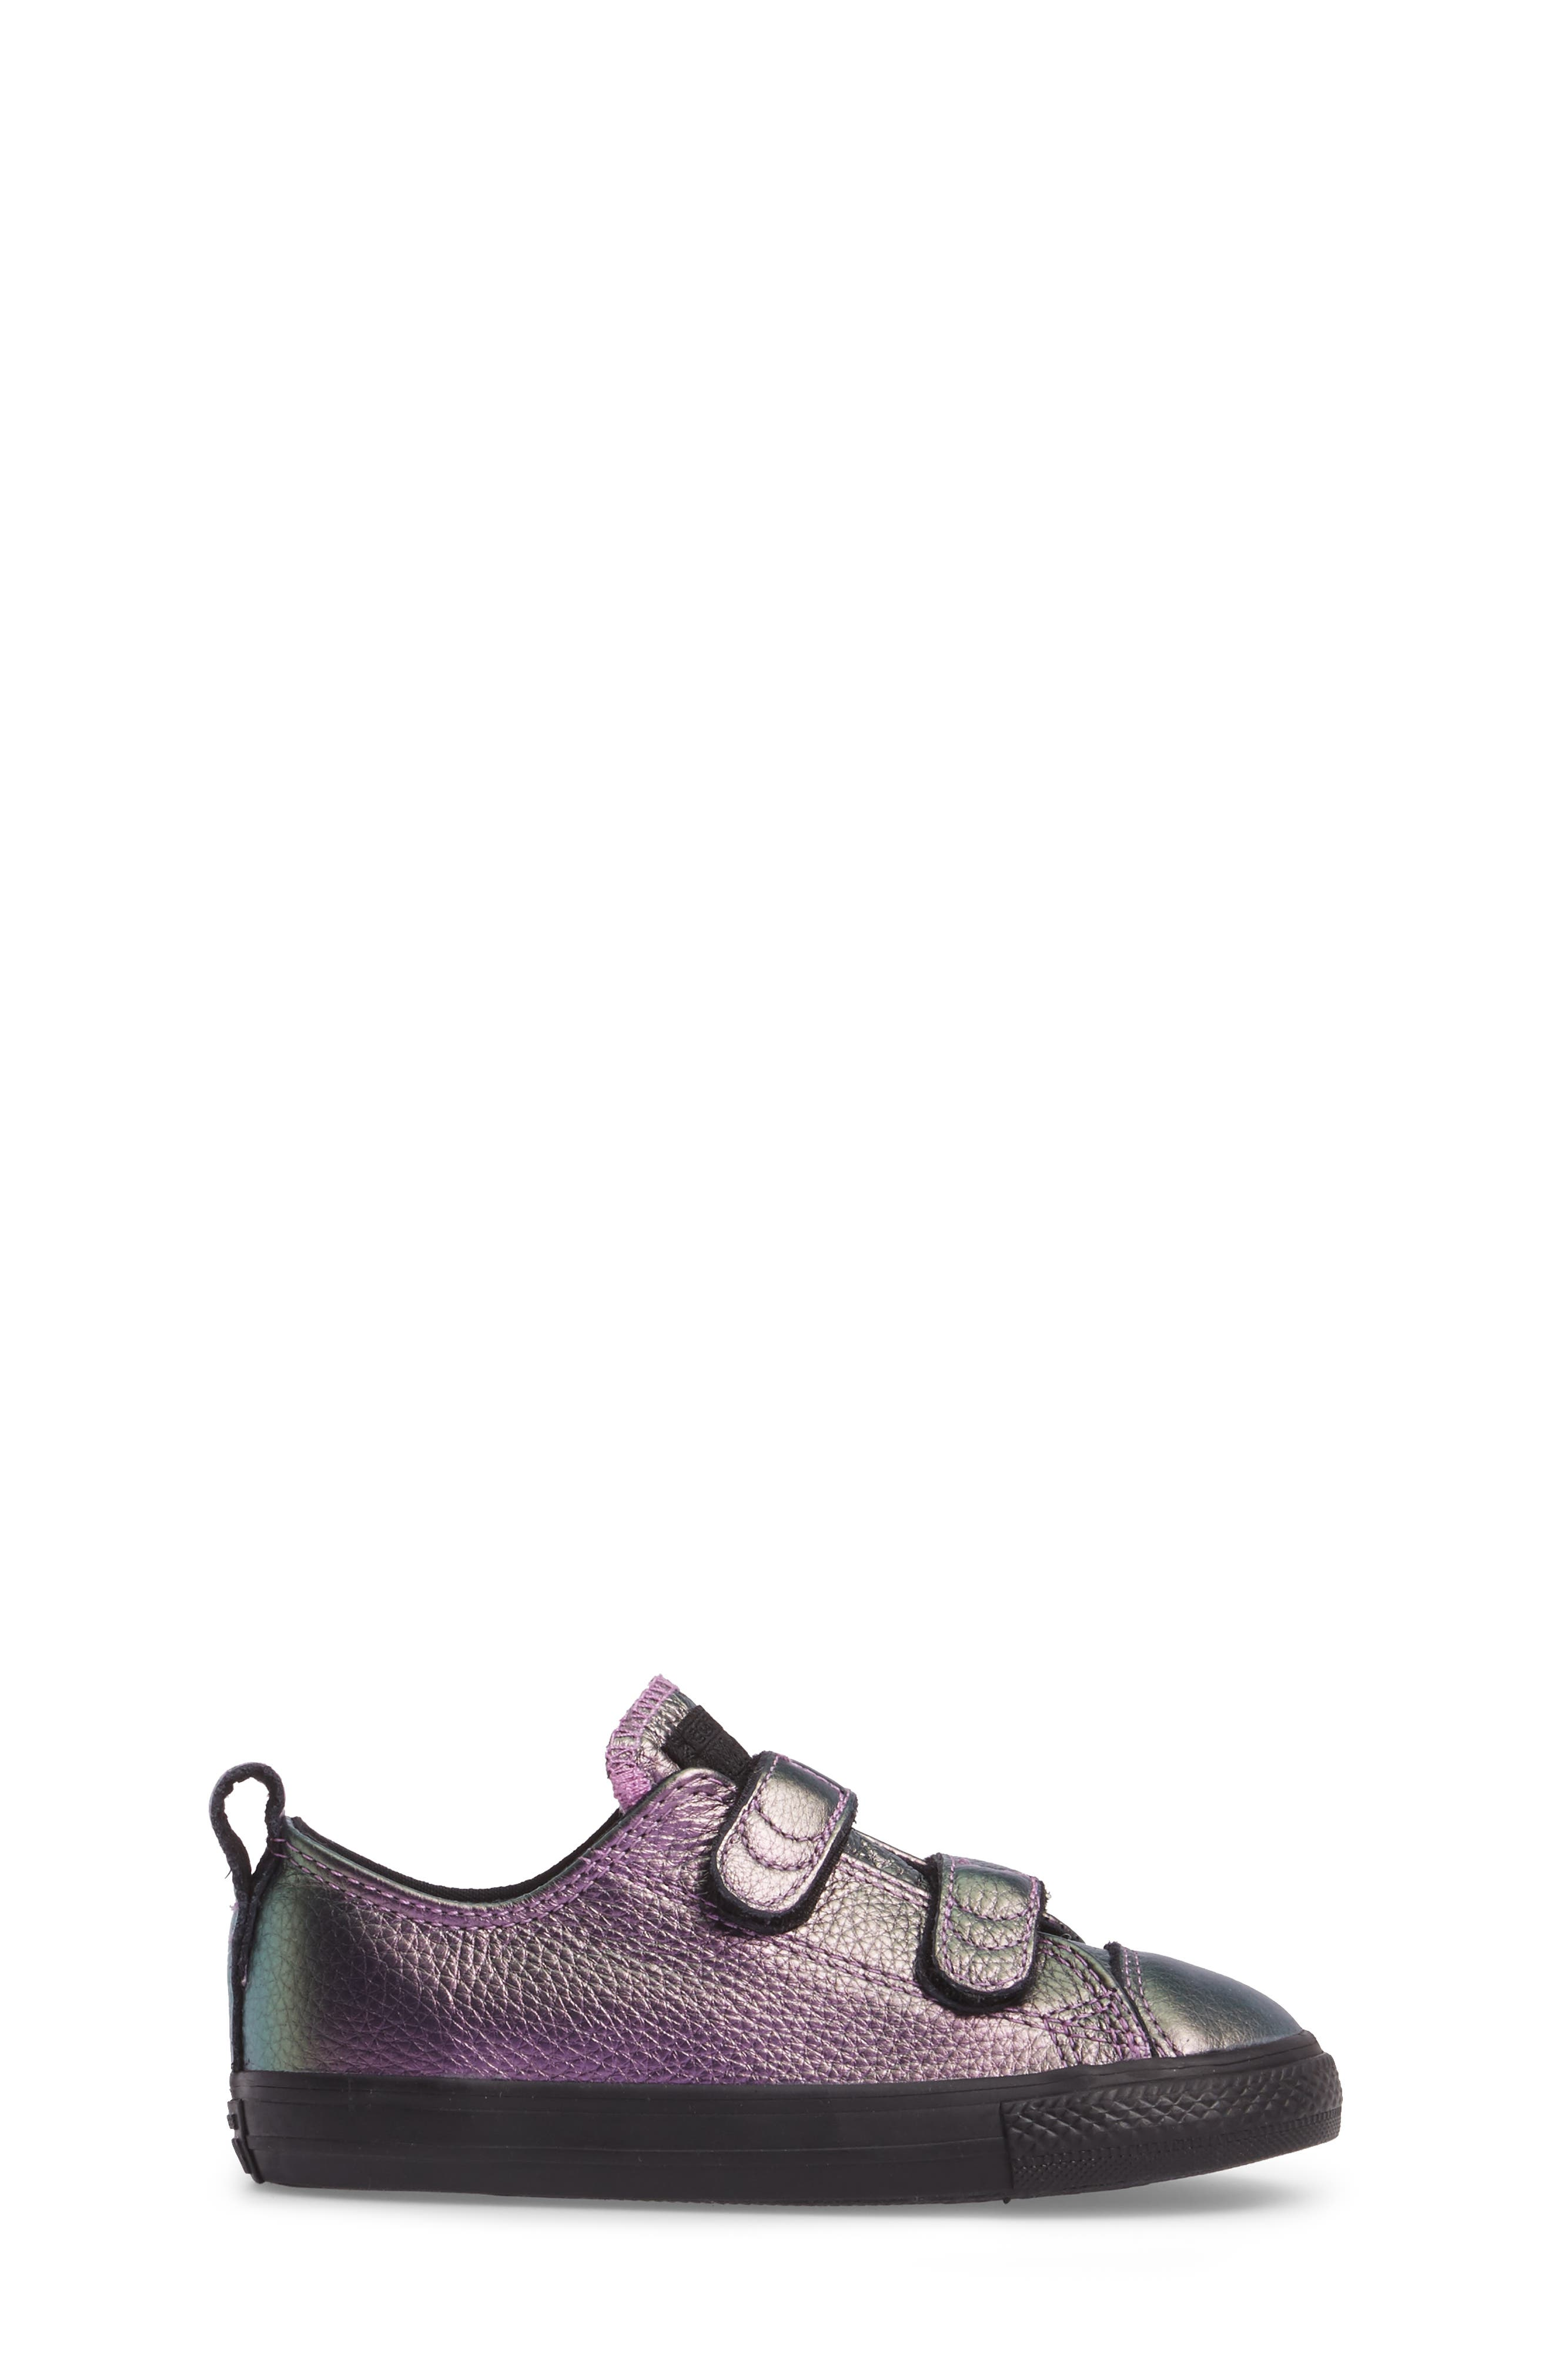 Chuck Taylor<sup>®</sup> All Star<sup>®</sup> Iridescent Leather Low Top Sneaker,                             Alternate thumbnail 3, color,                             500